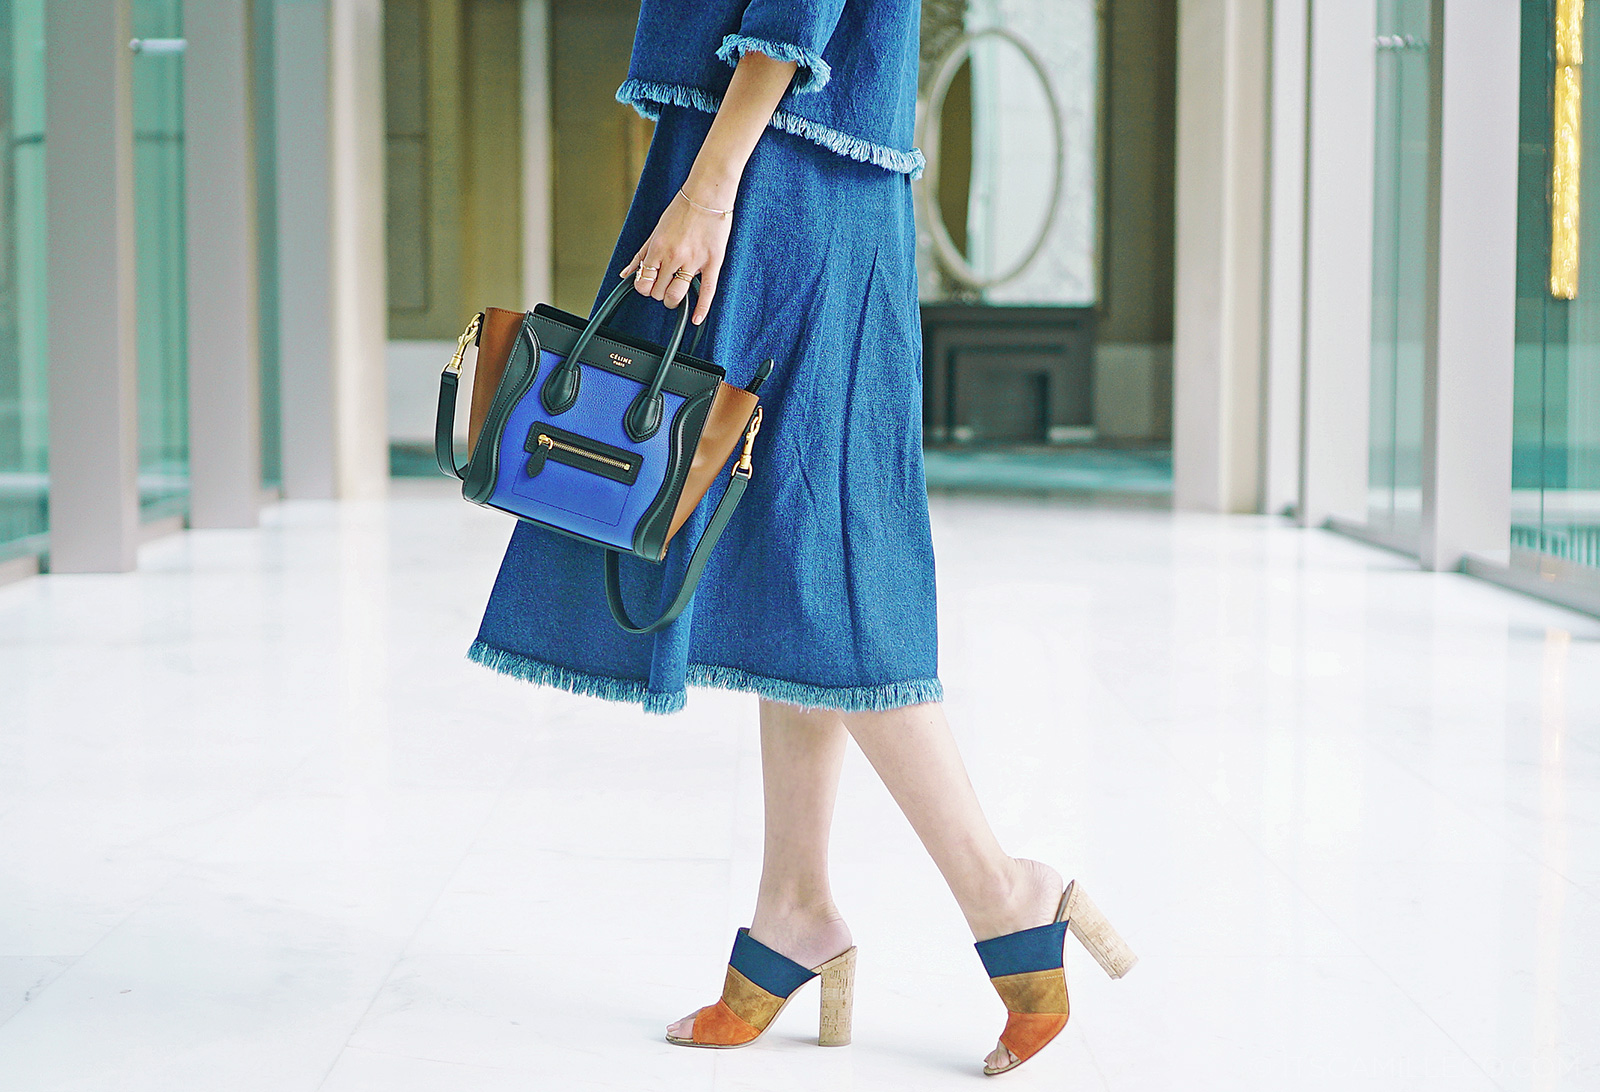 J Runway Denim Coordinates, Gianvito Rossi Mules, Céline luggage nano, Camille Co in denim on denim